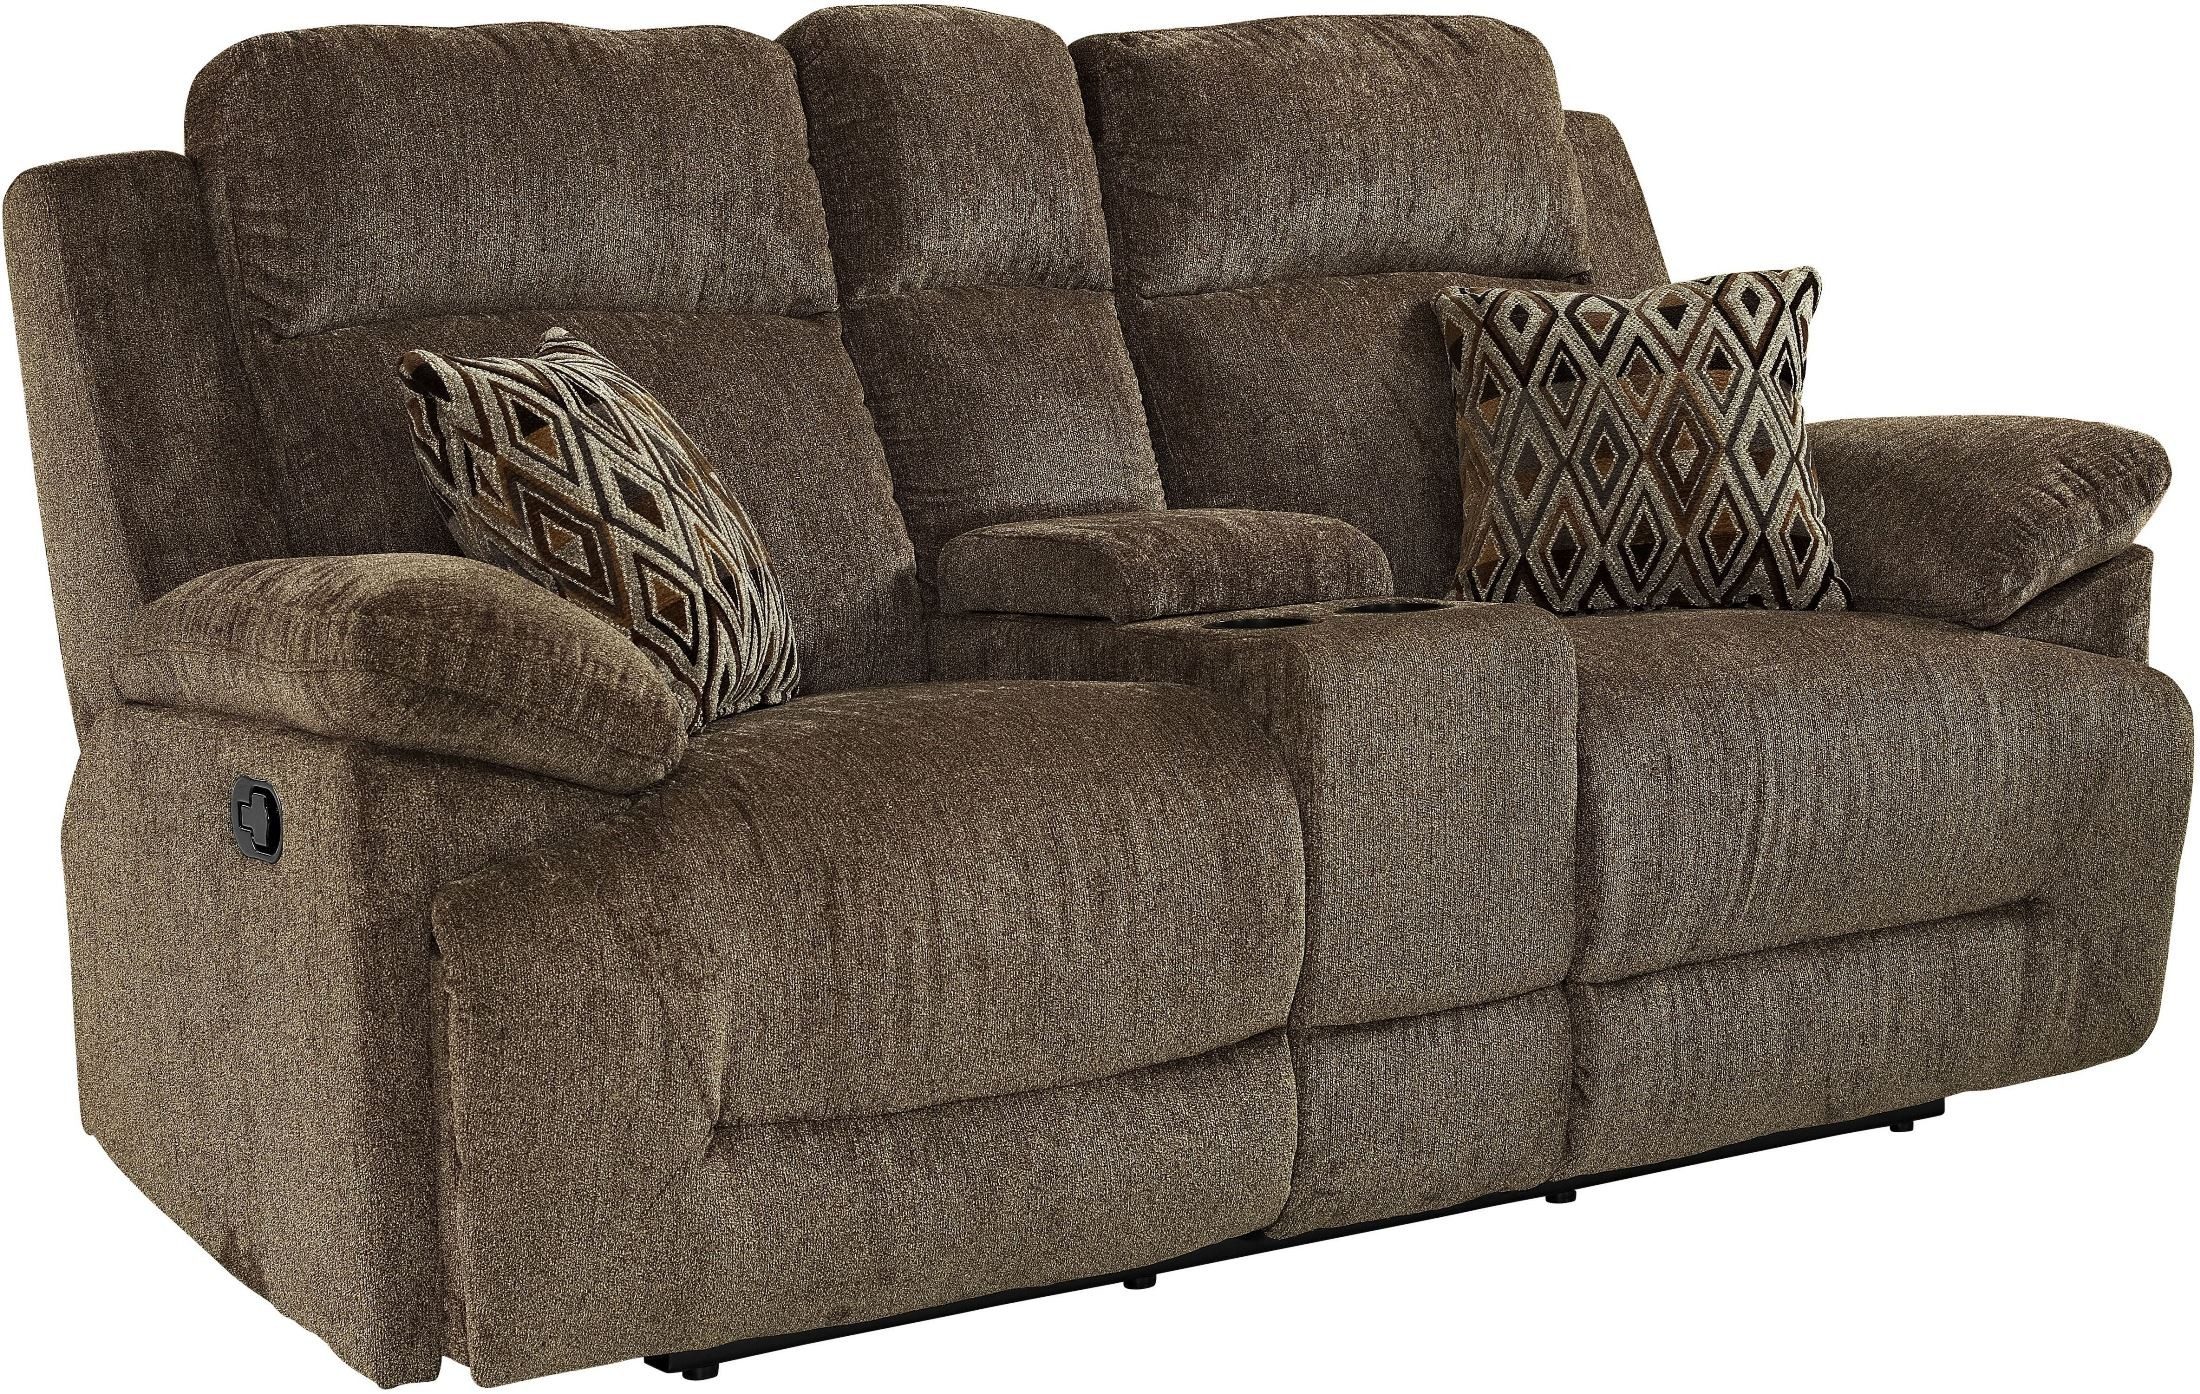 Ryder King Kong Cocoa Dual Reclining Console Loveseat From